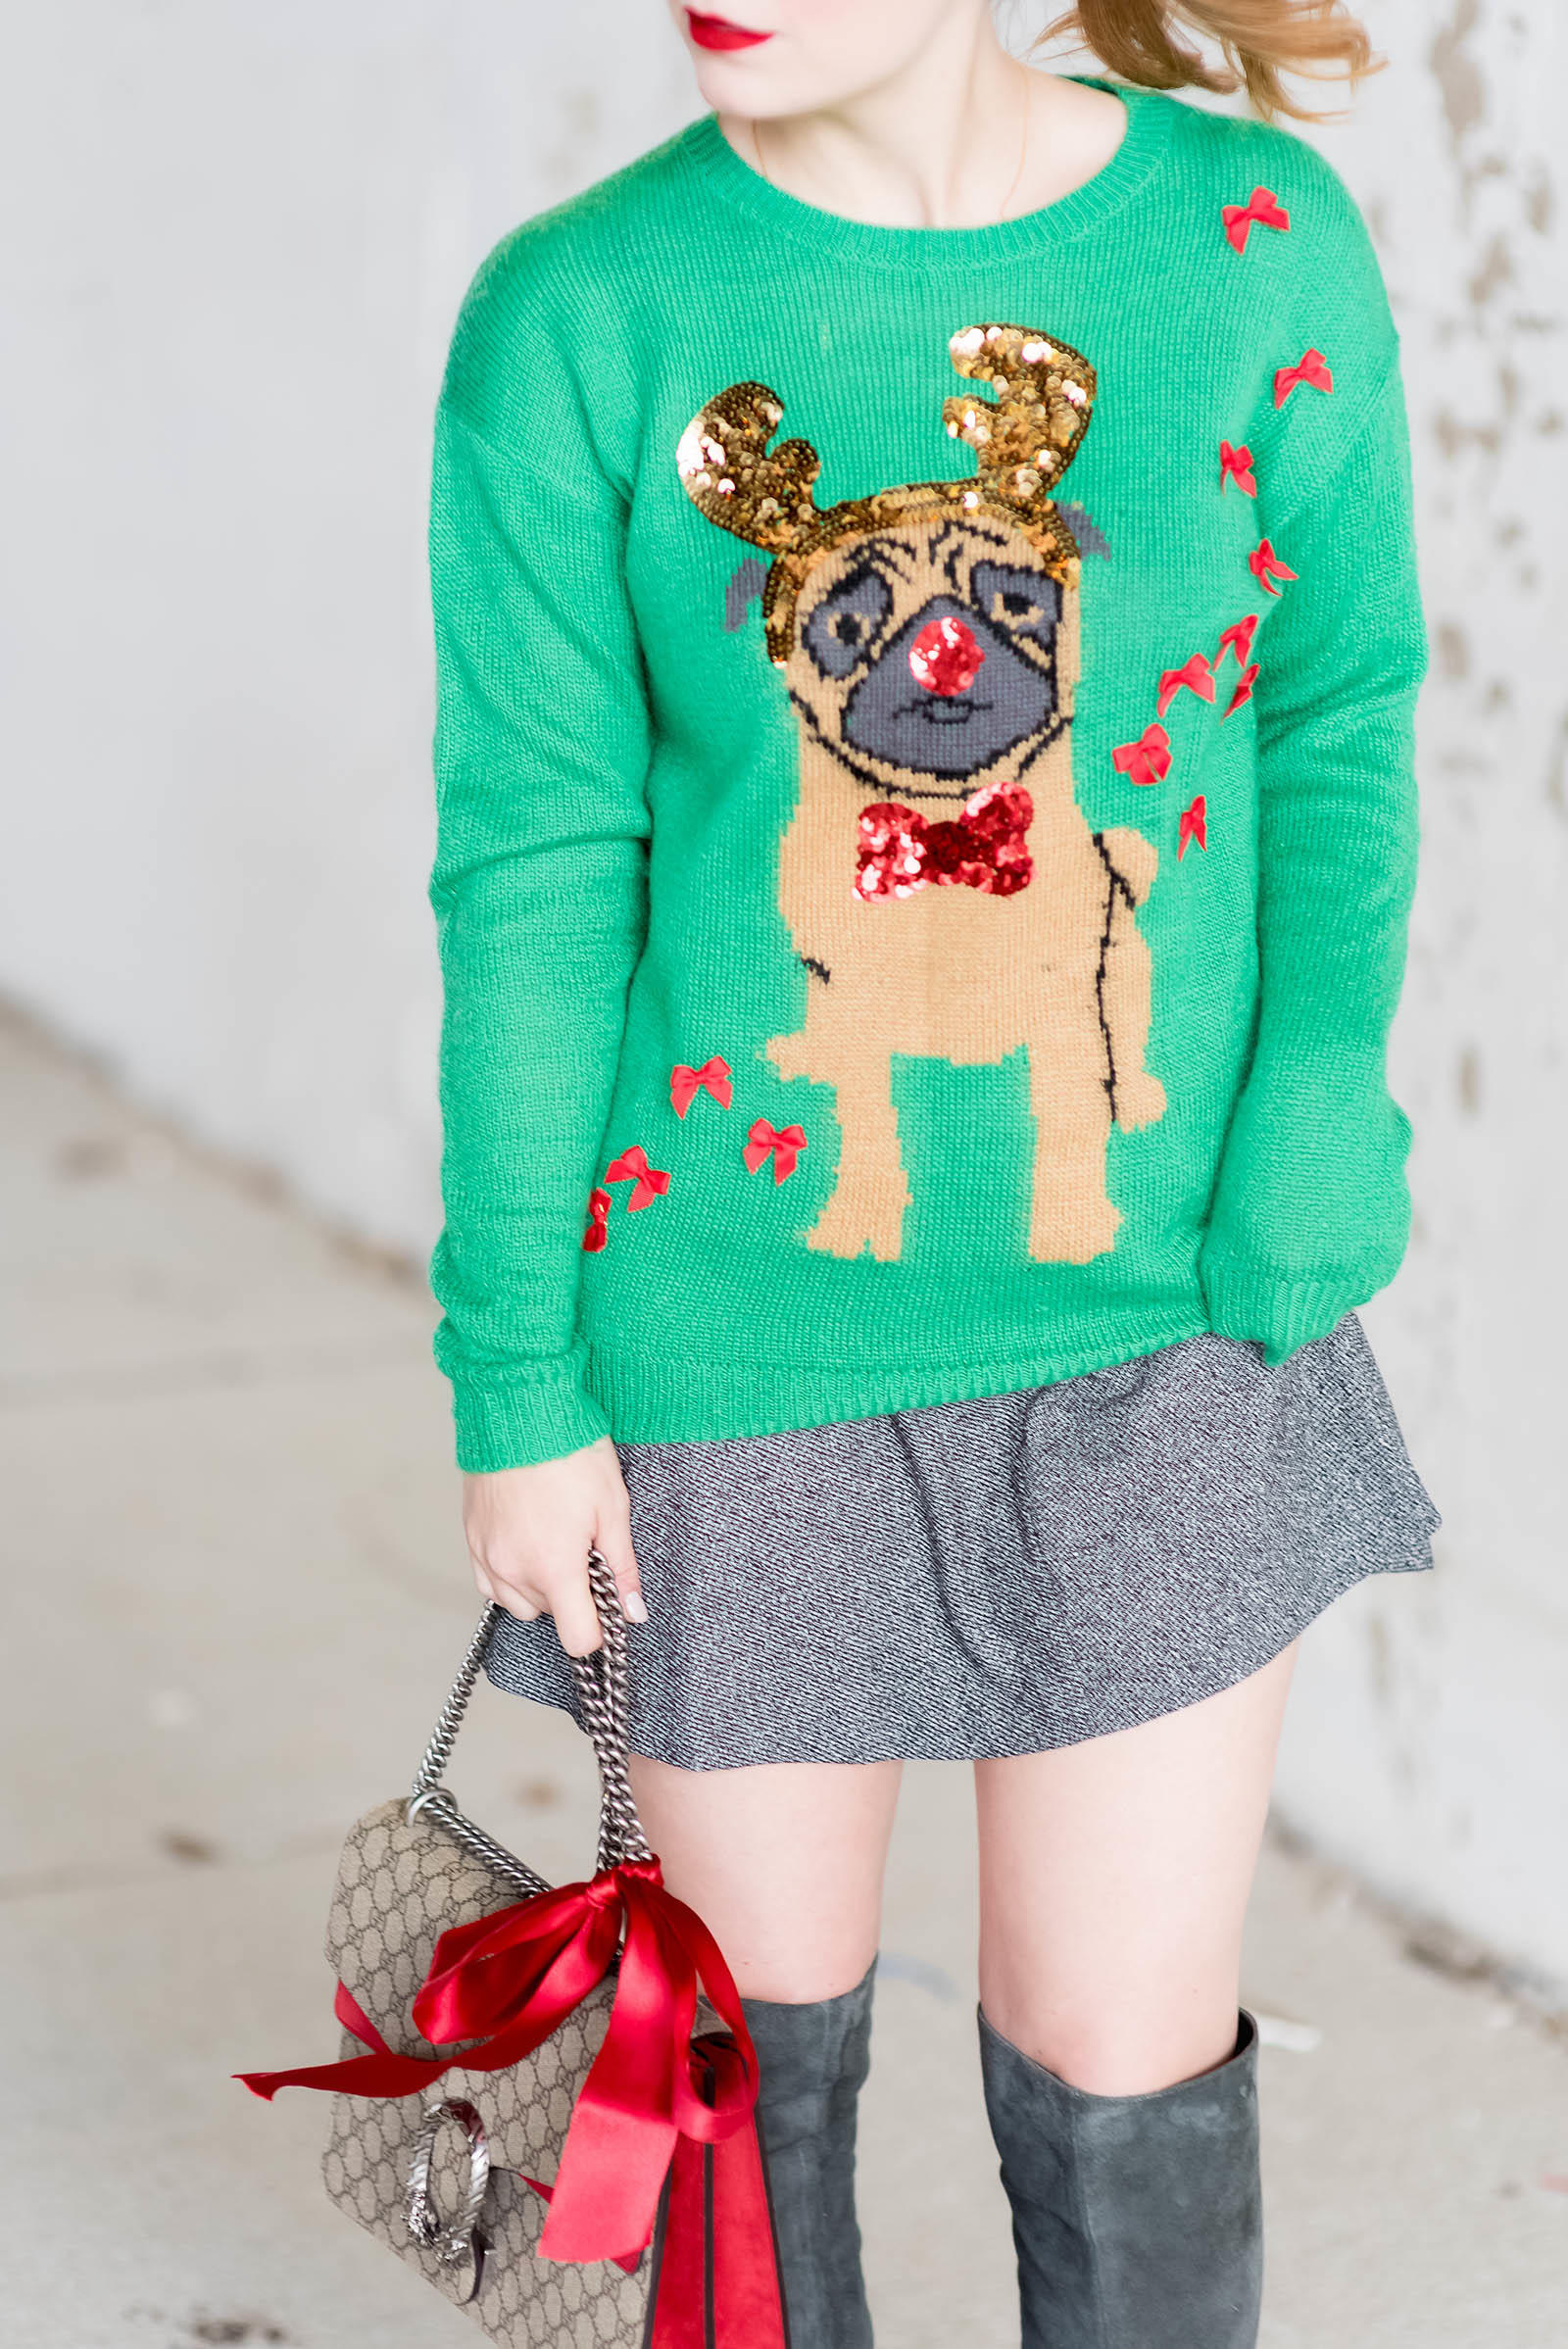 How to Style An Ugly Christmas Sweater